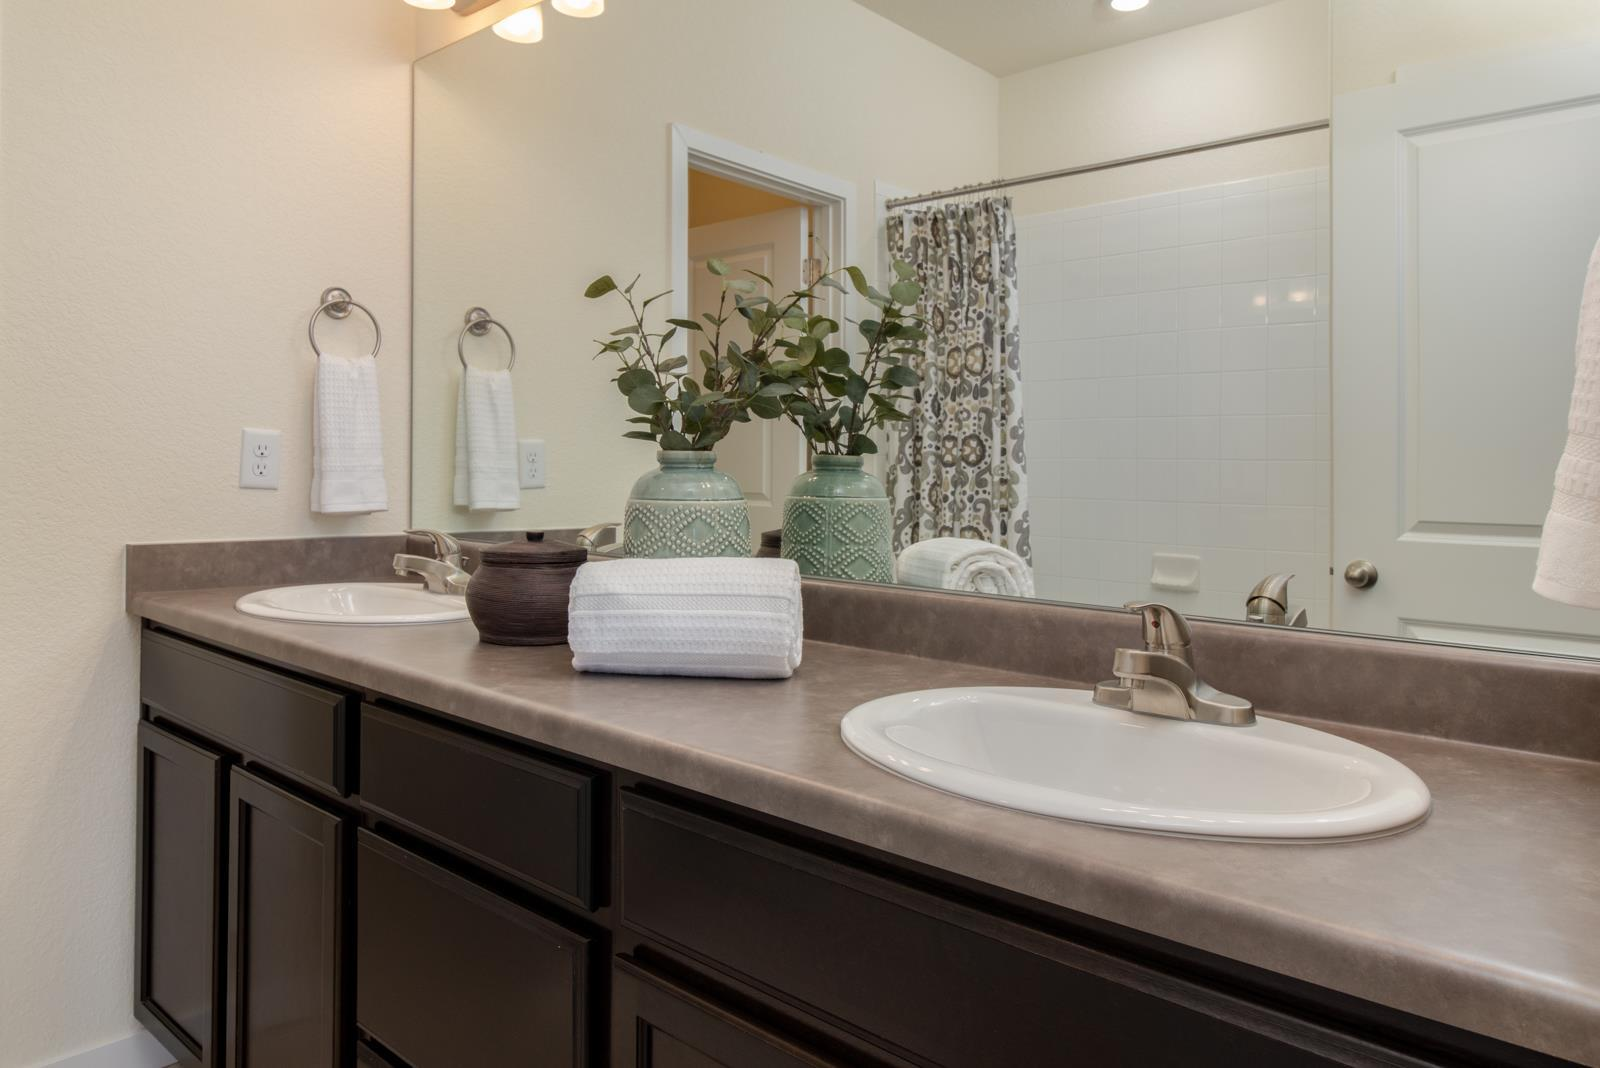 Bathroom featured in the Mountain Stream By BLVDWAY Communities in Denver, CO